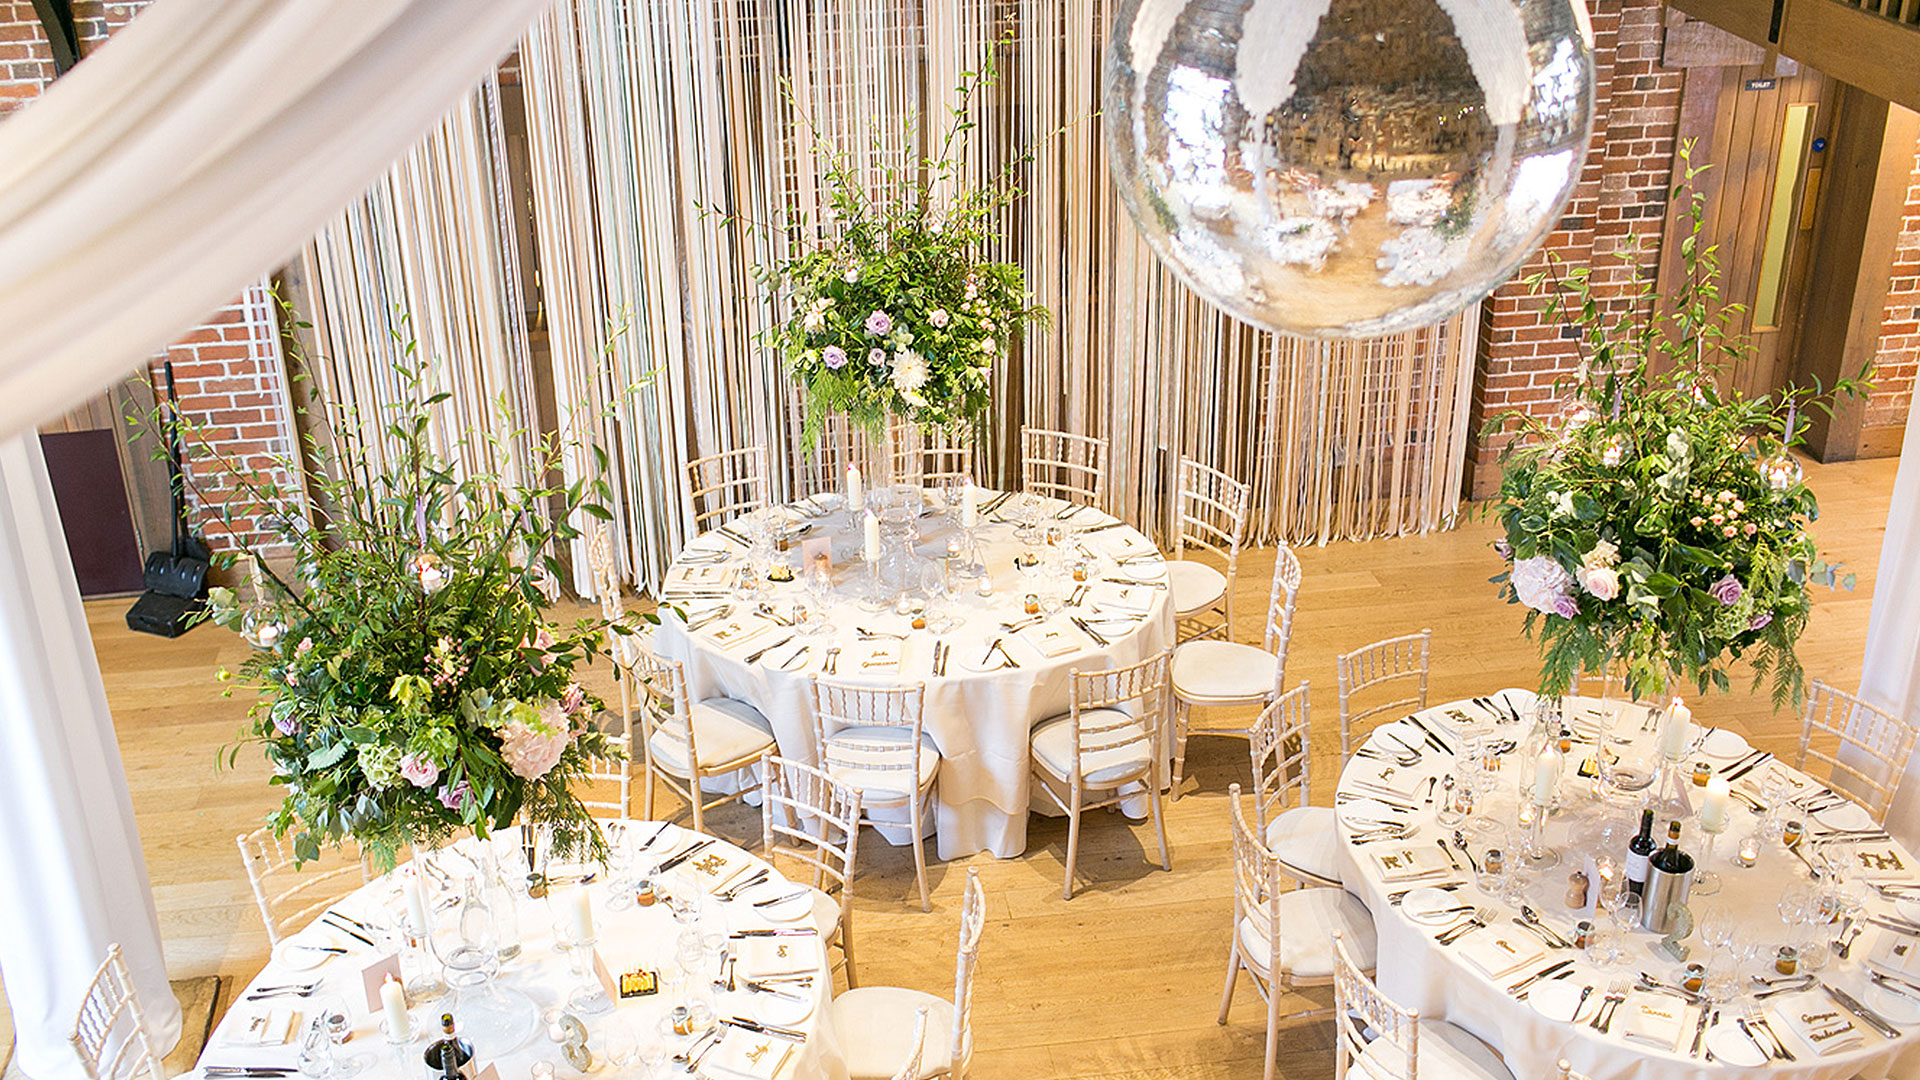 A disco ball hangs from the ceiling in this Essex barn wedding venue - wedding ideas